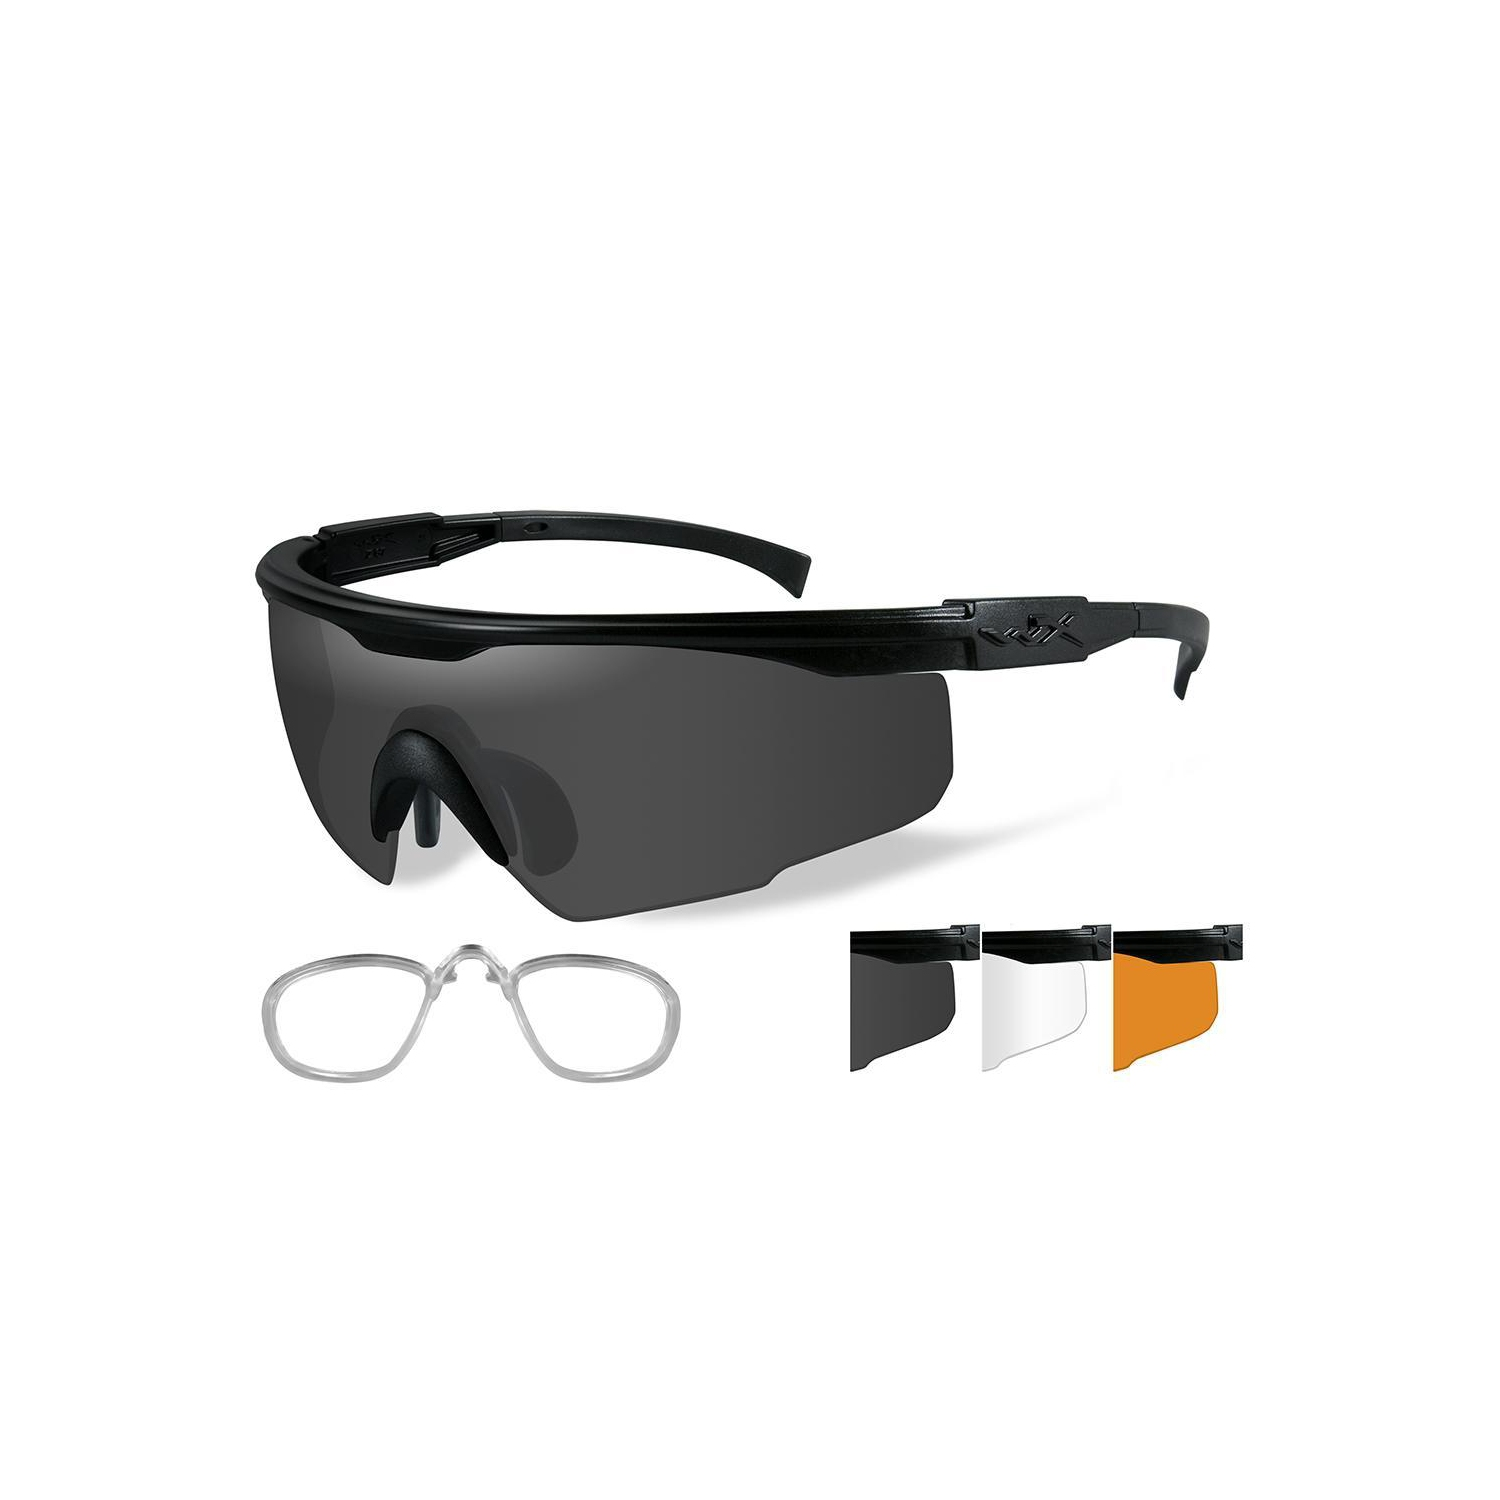 6cc5430da88 Wiley X PT-1 Sunglasses - Smoke Grey-Clear-Rust Lens - Matte Black Frame w- Rx Insert - Online Only